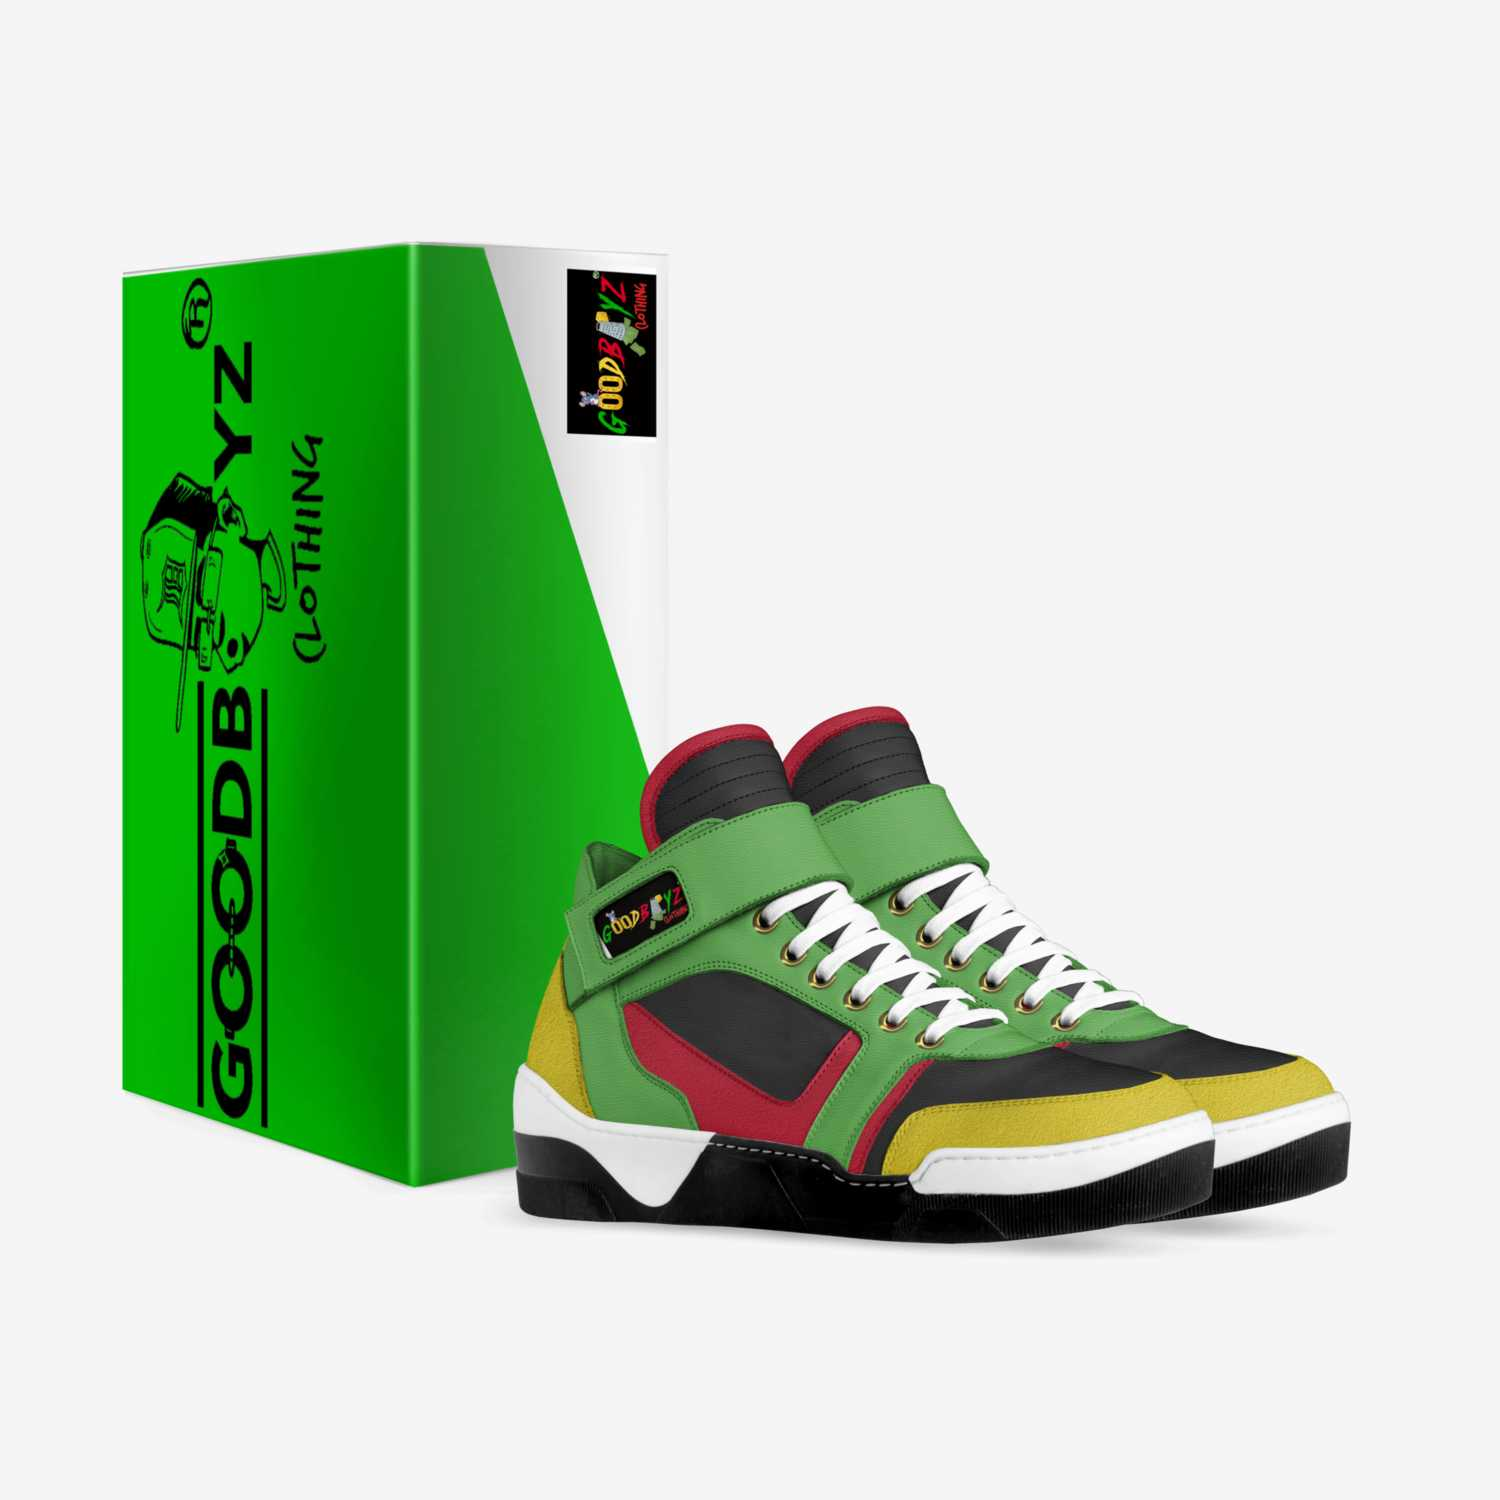 Goodboyz GBC 1.0 custom made in Italy shoes by Rodney Pearson | Box view